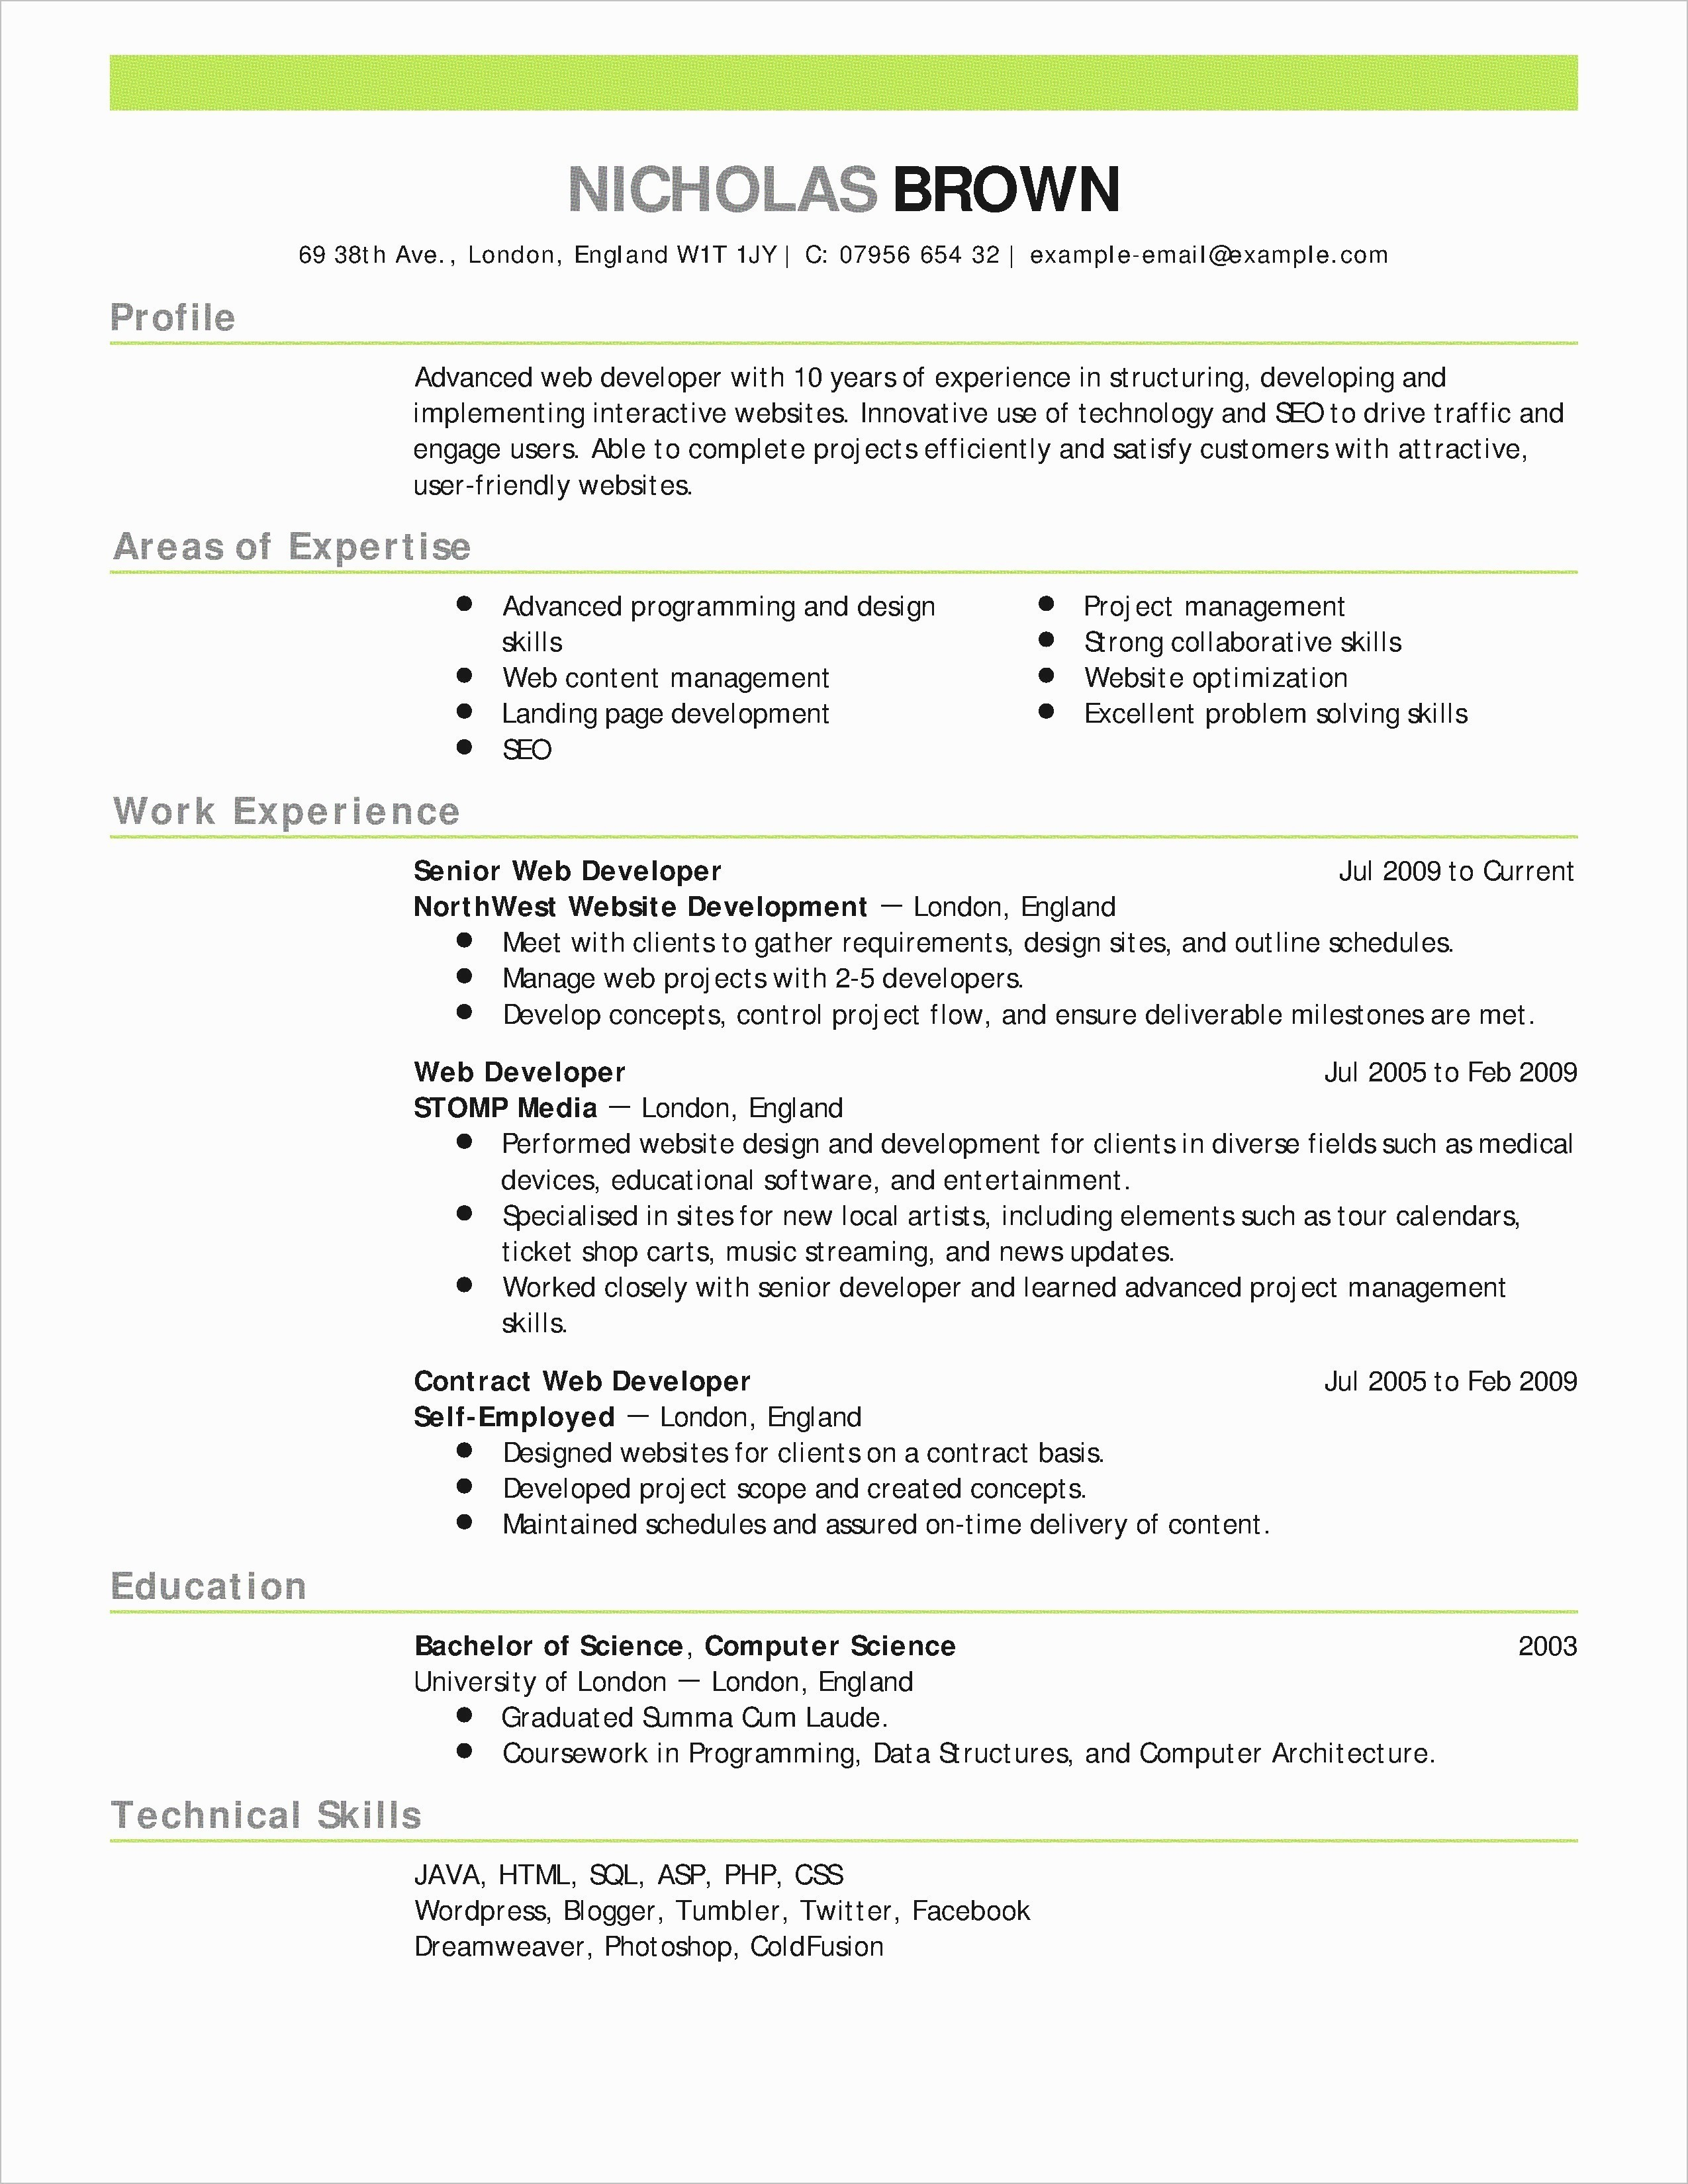 The Best Resume Ever - the Best Resume Ever Beautiful Beautiful Resume Sample Doc Best